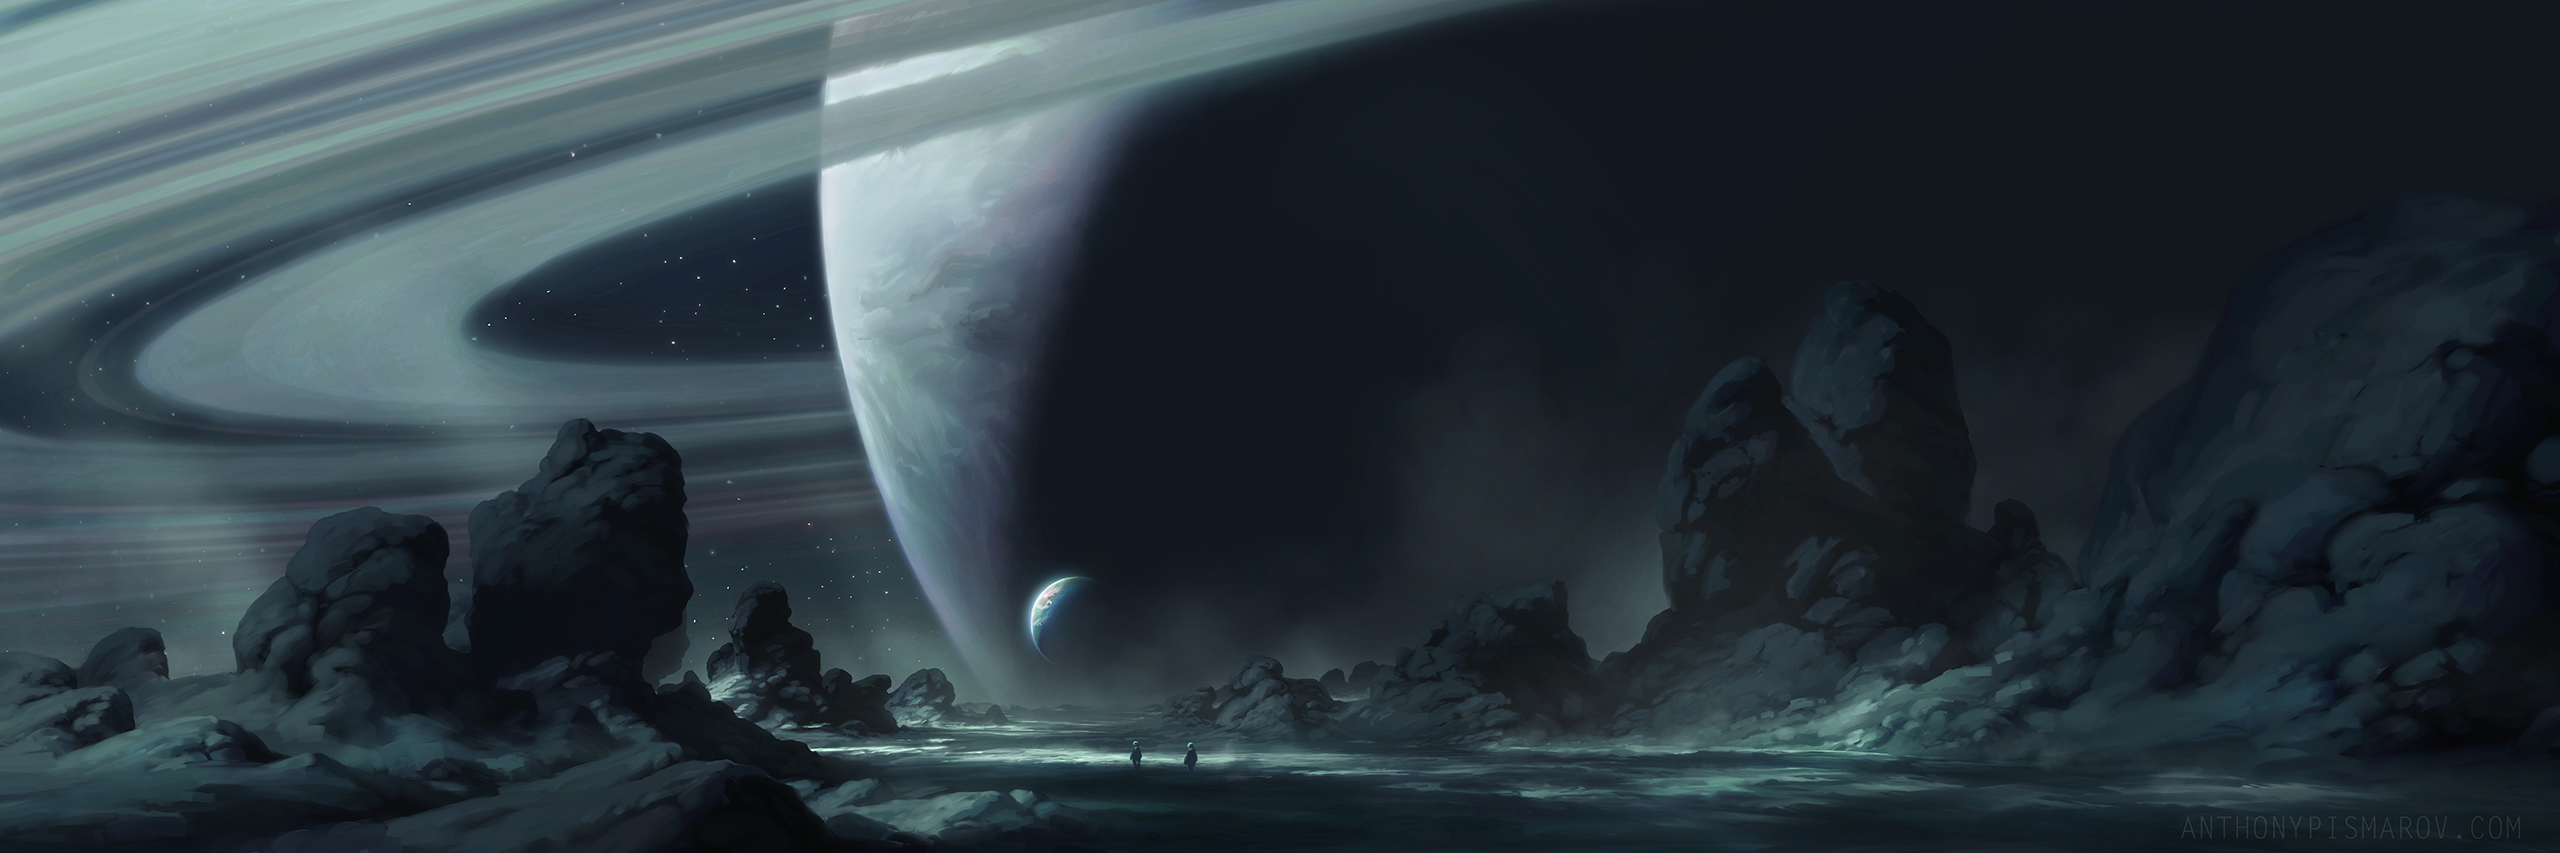 Beneath the Giant's Rings by AnthonyPismarov